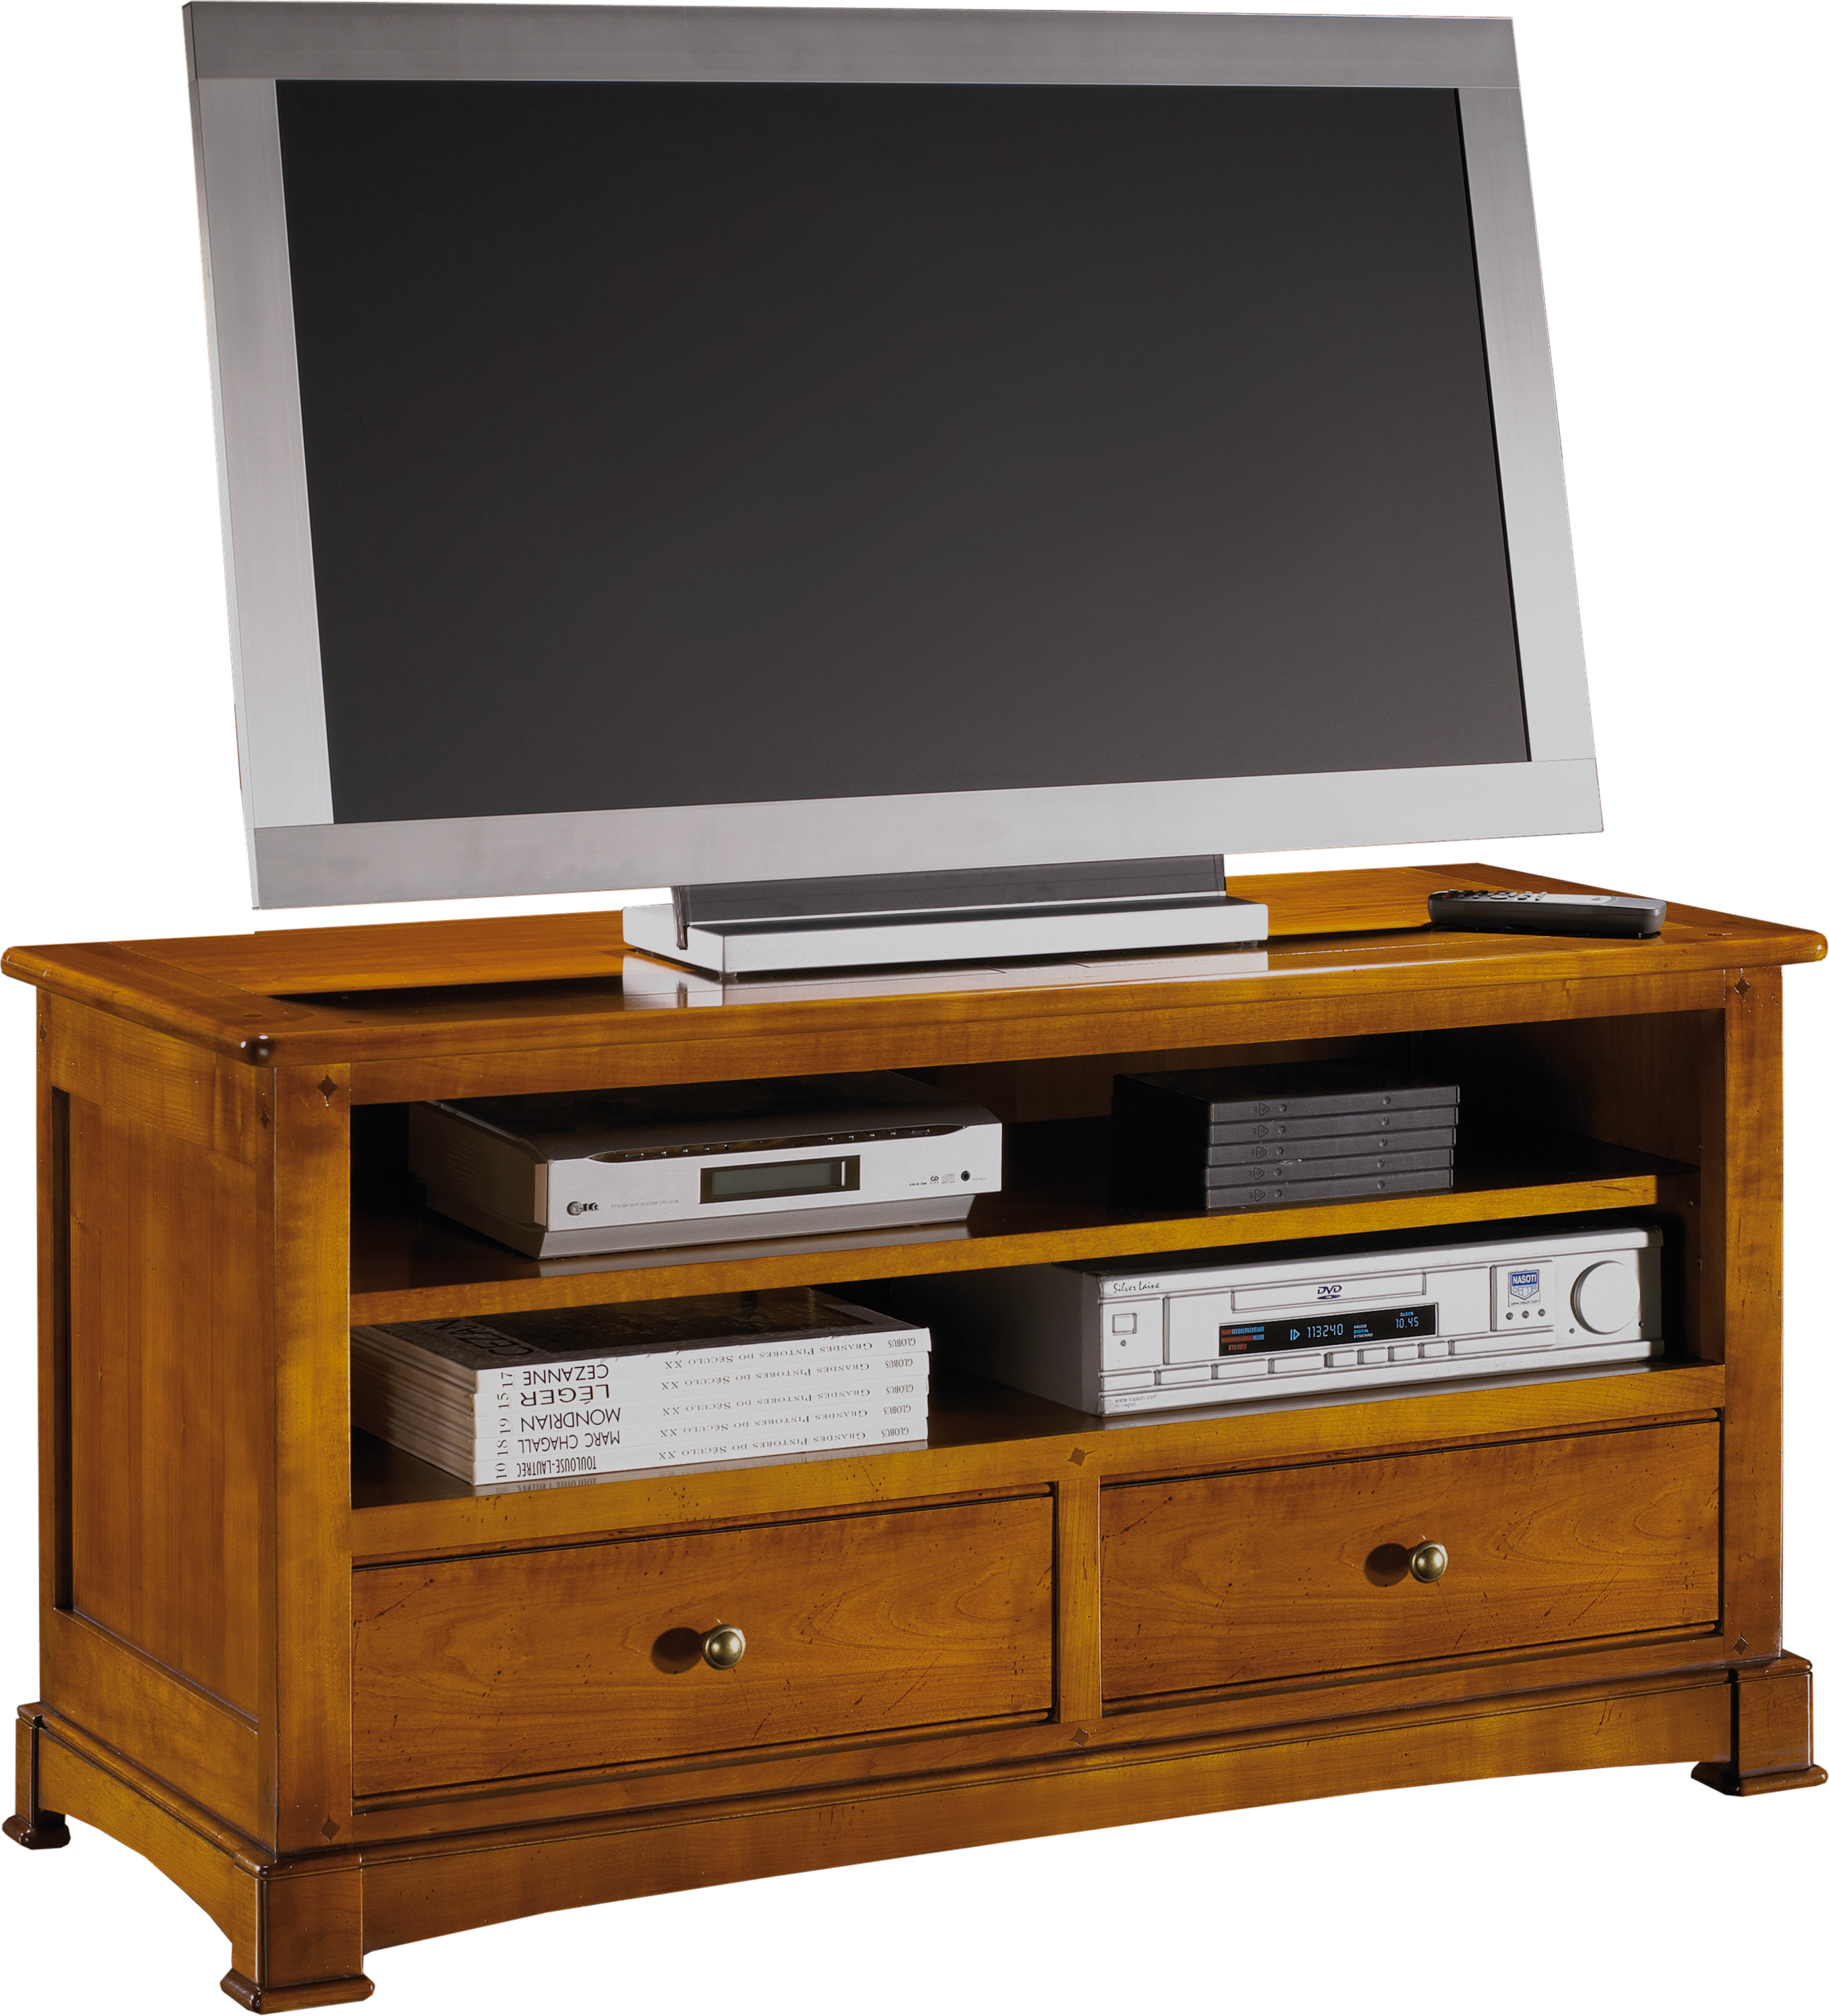 meuble tv meubles tv hifi merisier meubles tv hifi merisier trouvez meubles tv hifi merisier. Black Bedroom Furniture Sets. Home Design Ideas